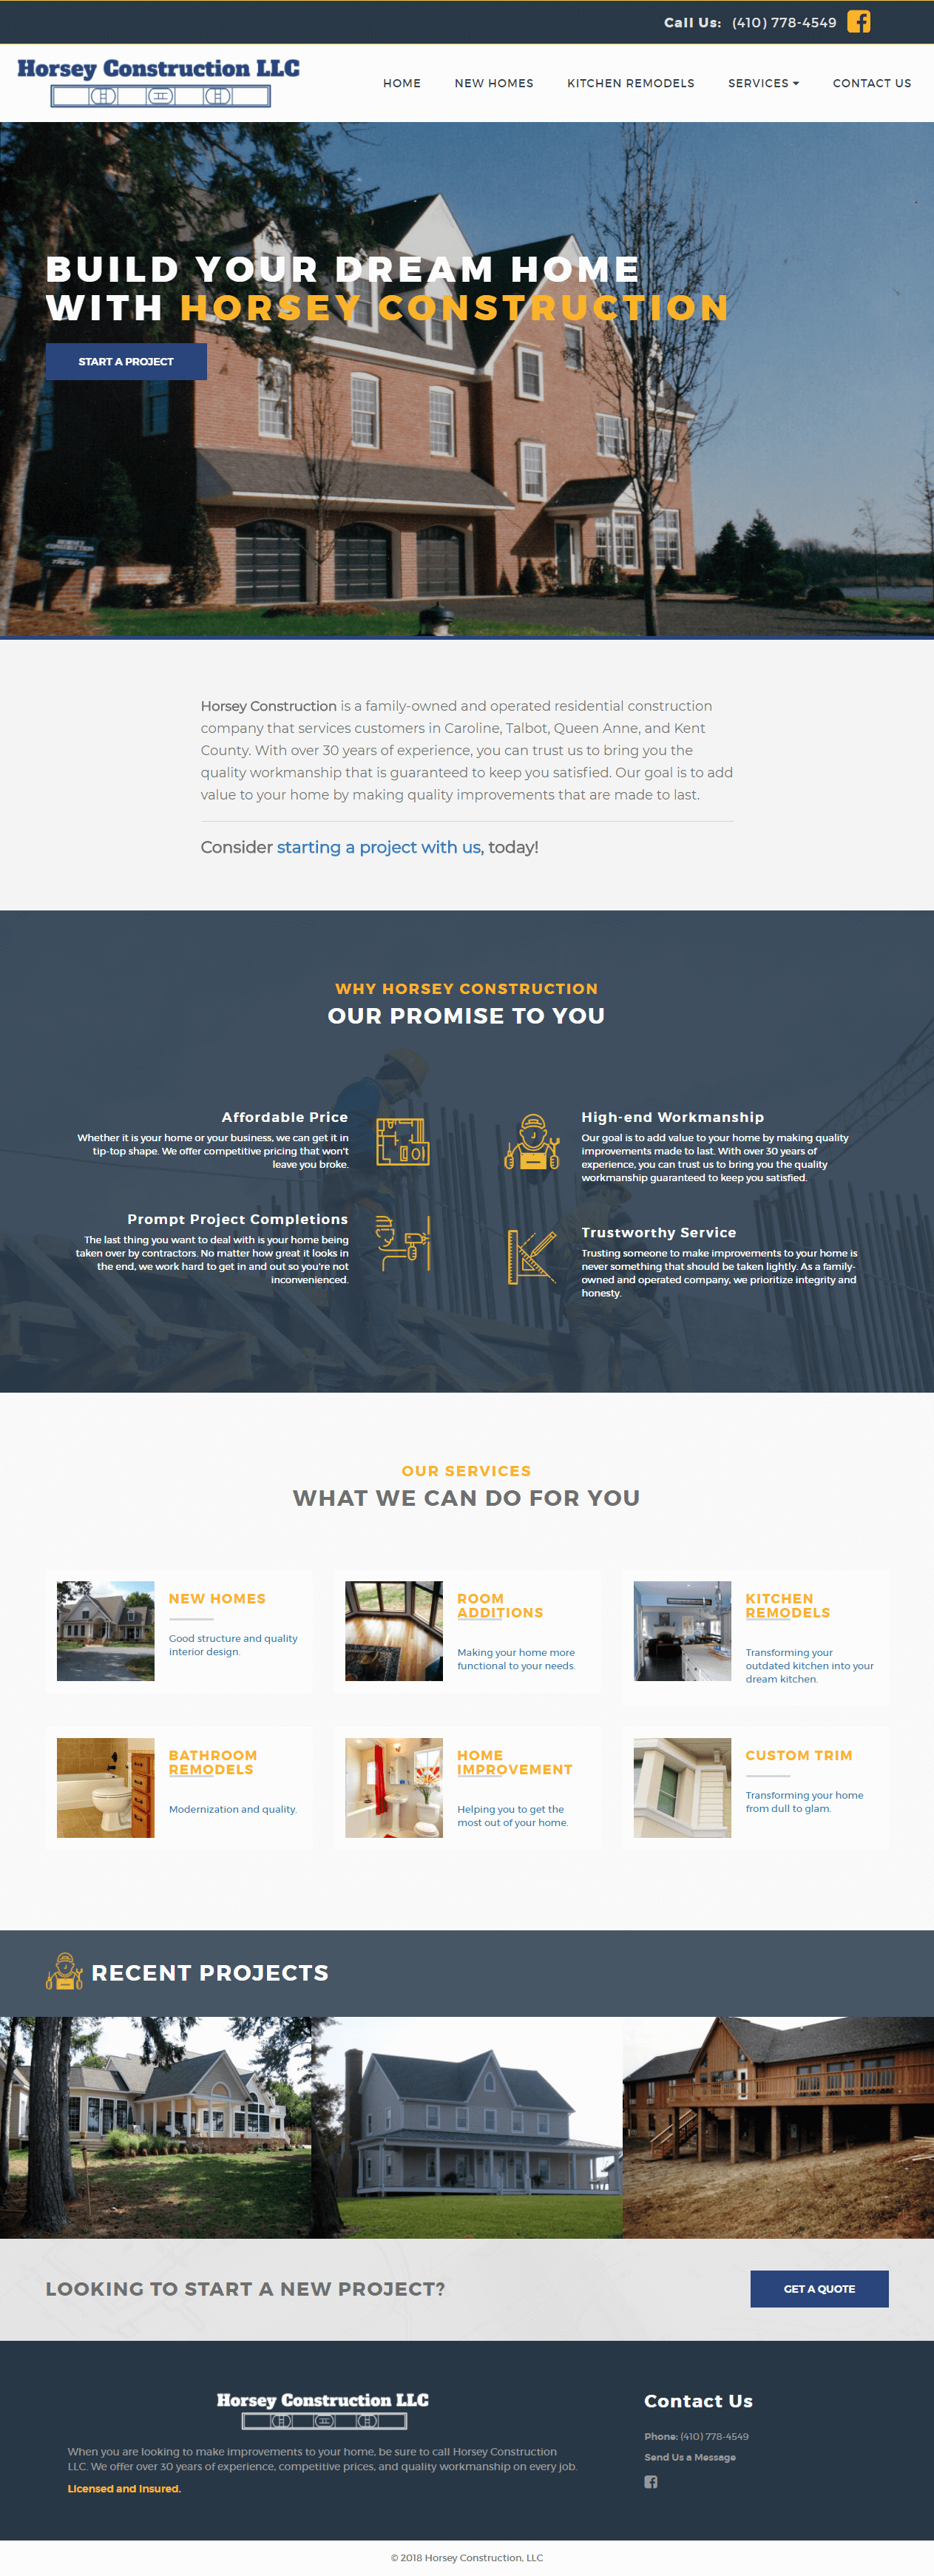 horsey-construction-contractor-website-design-screenshot